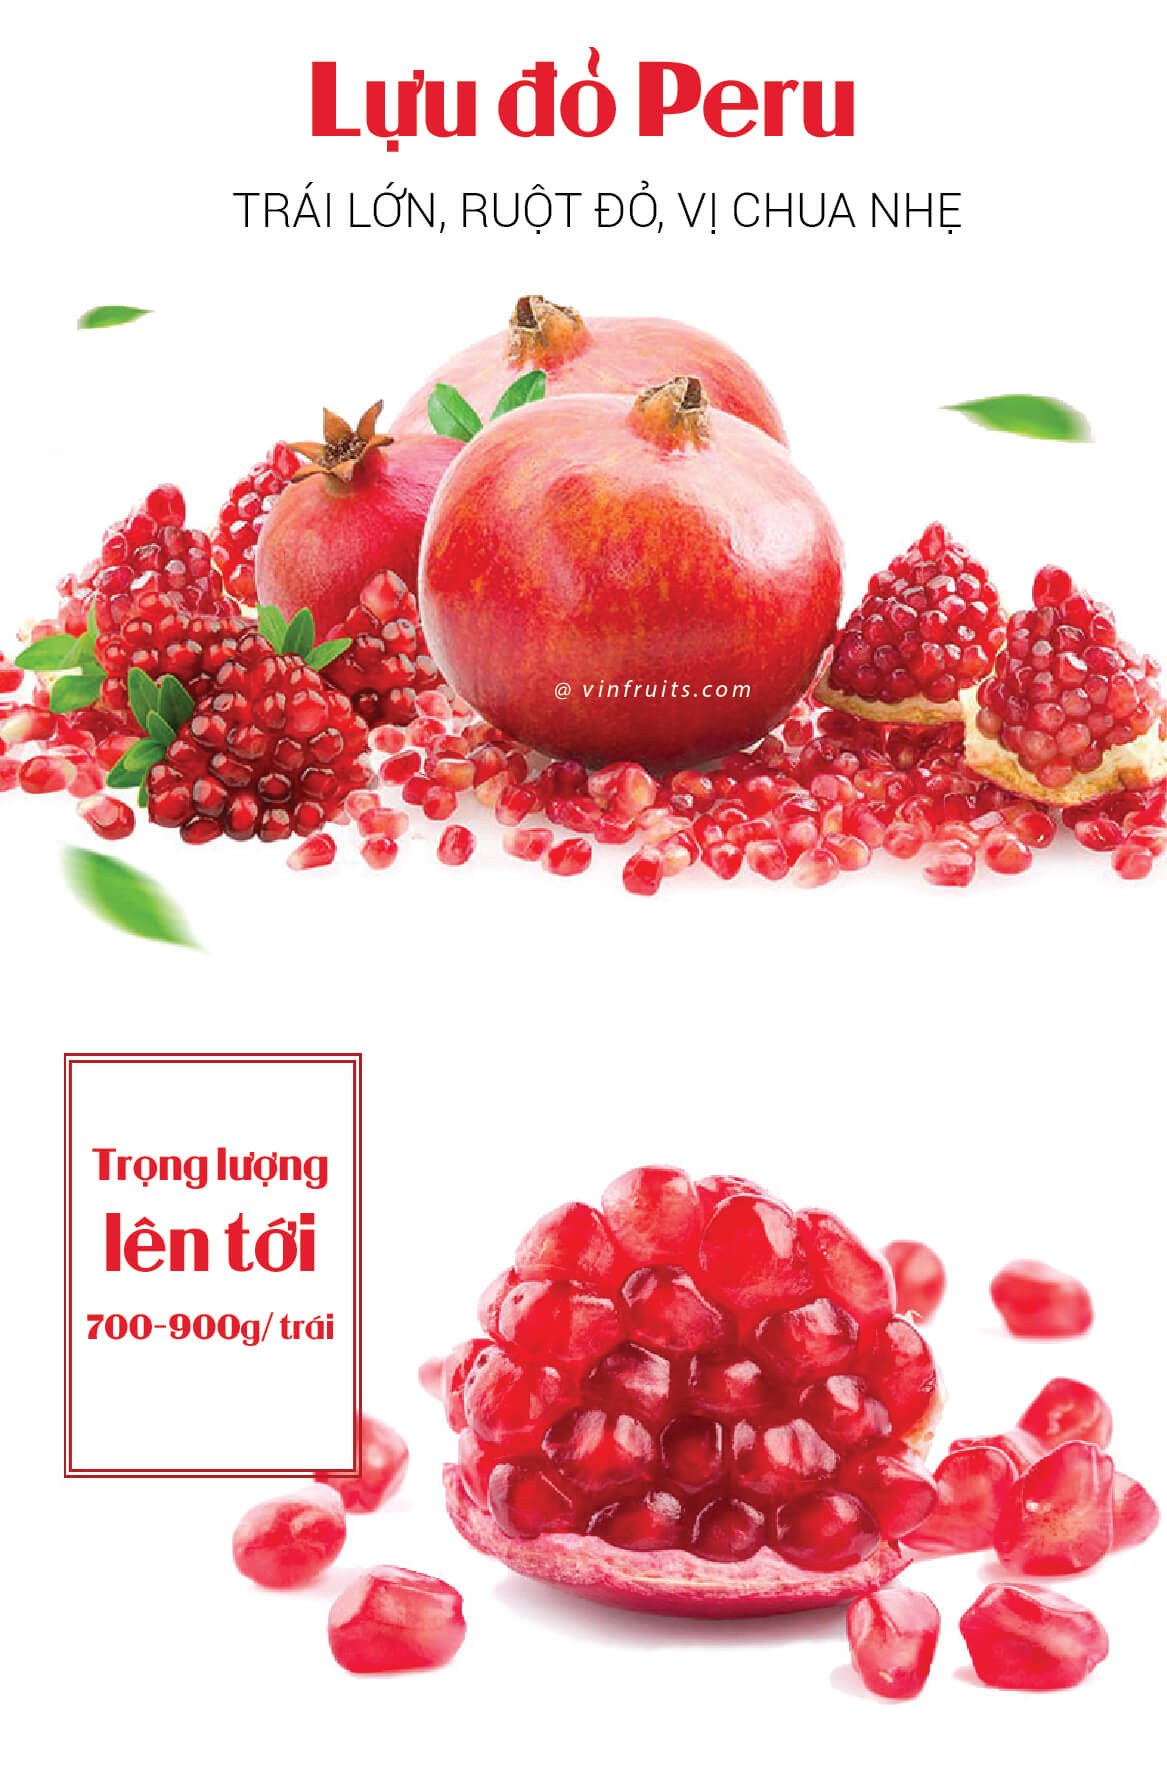 Luu do Peru - vinfruits.com 1